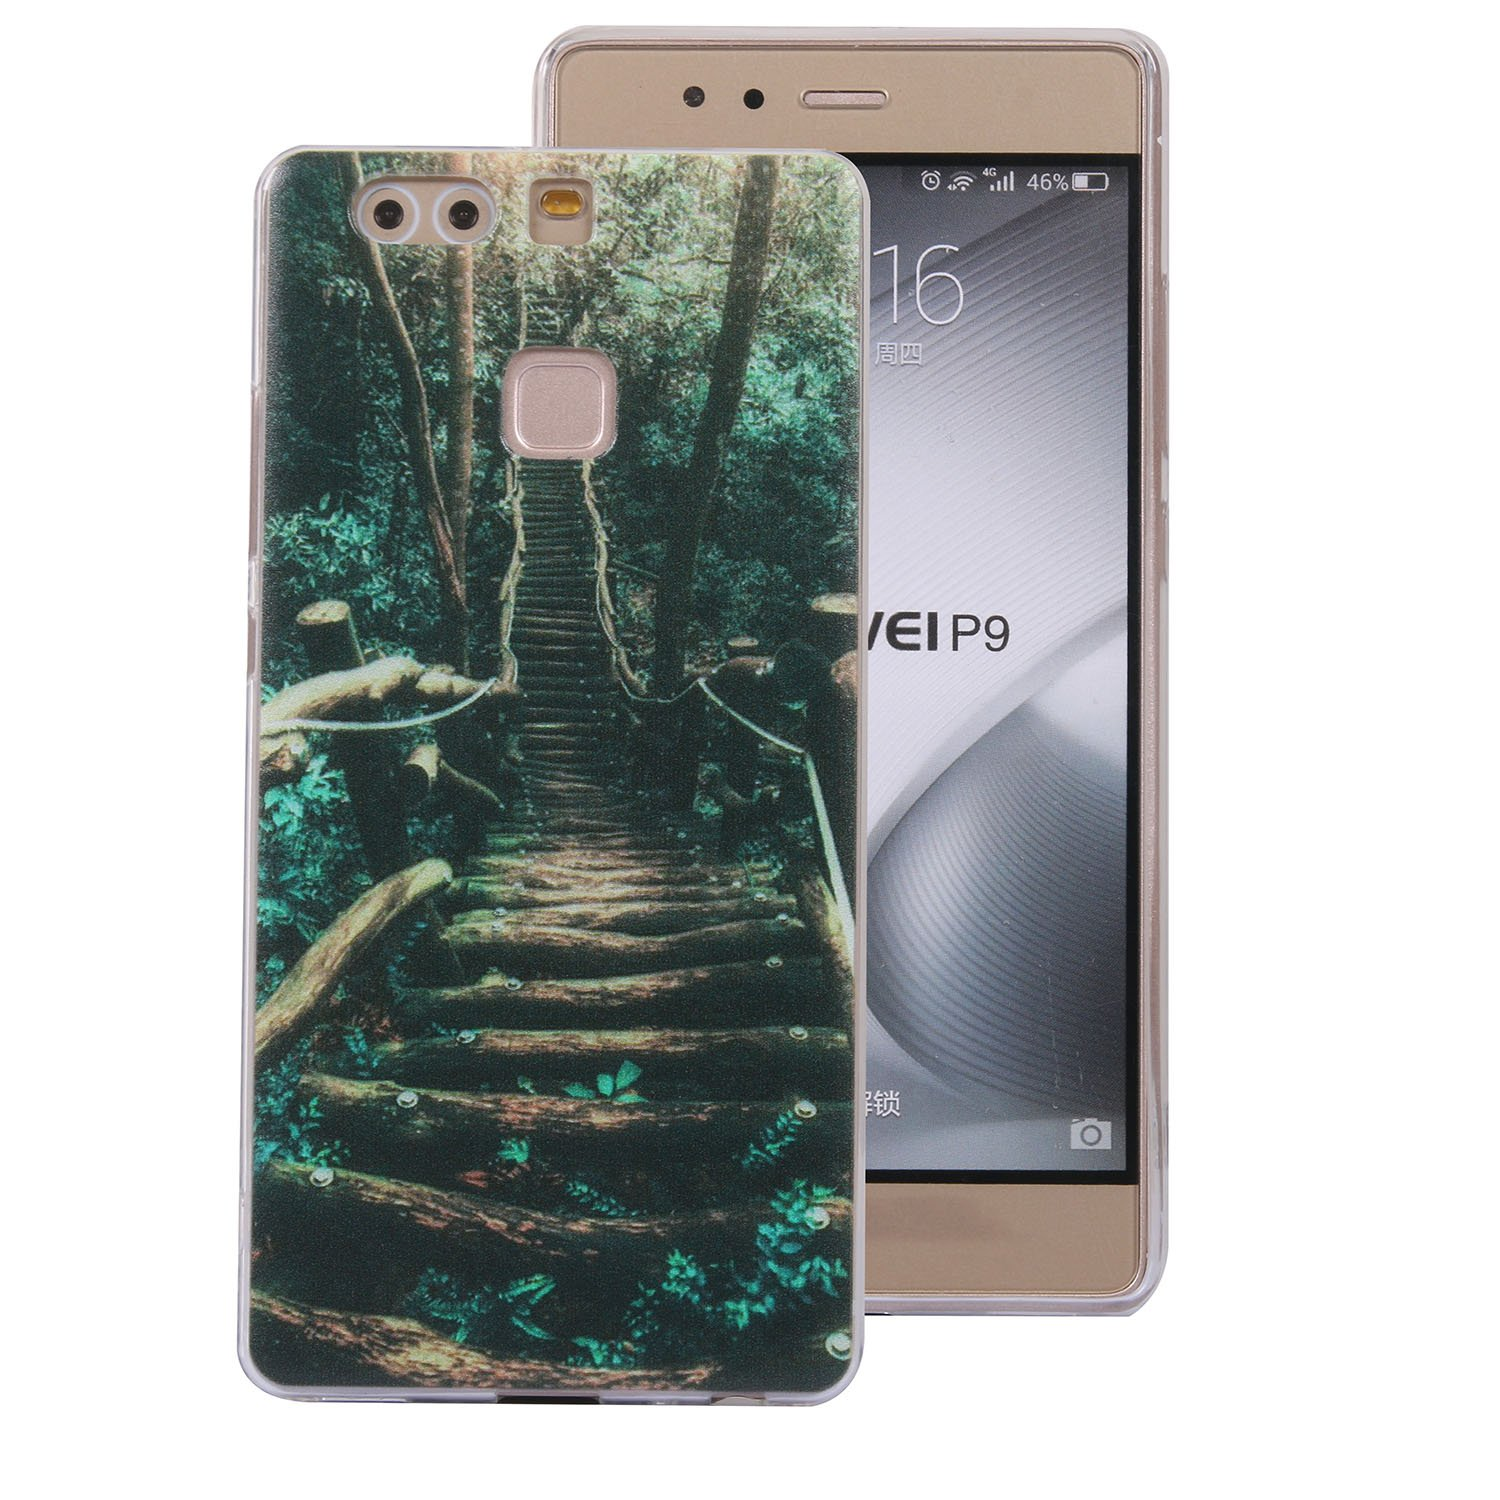 Huawei P9 Handyhü lle, Huawei P9 Silikon Hü lle, Cozy Hut 3D Handyhü lle Muster Case Cover Fü r Huawei P9 Liquid Crystal Ultra Dü nn Crystal Clear Transparent Handyhü lle Soft Cover Premium Anti-Scratch TPU Durchsichtige Schut